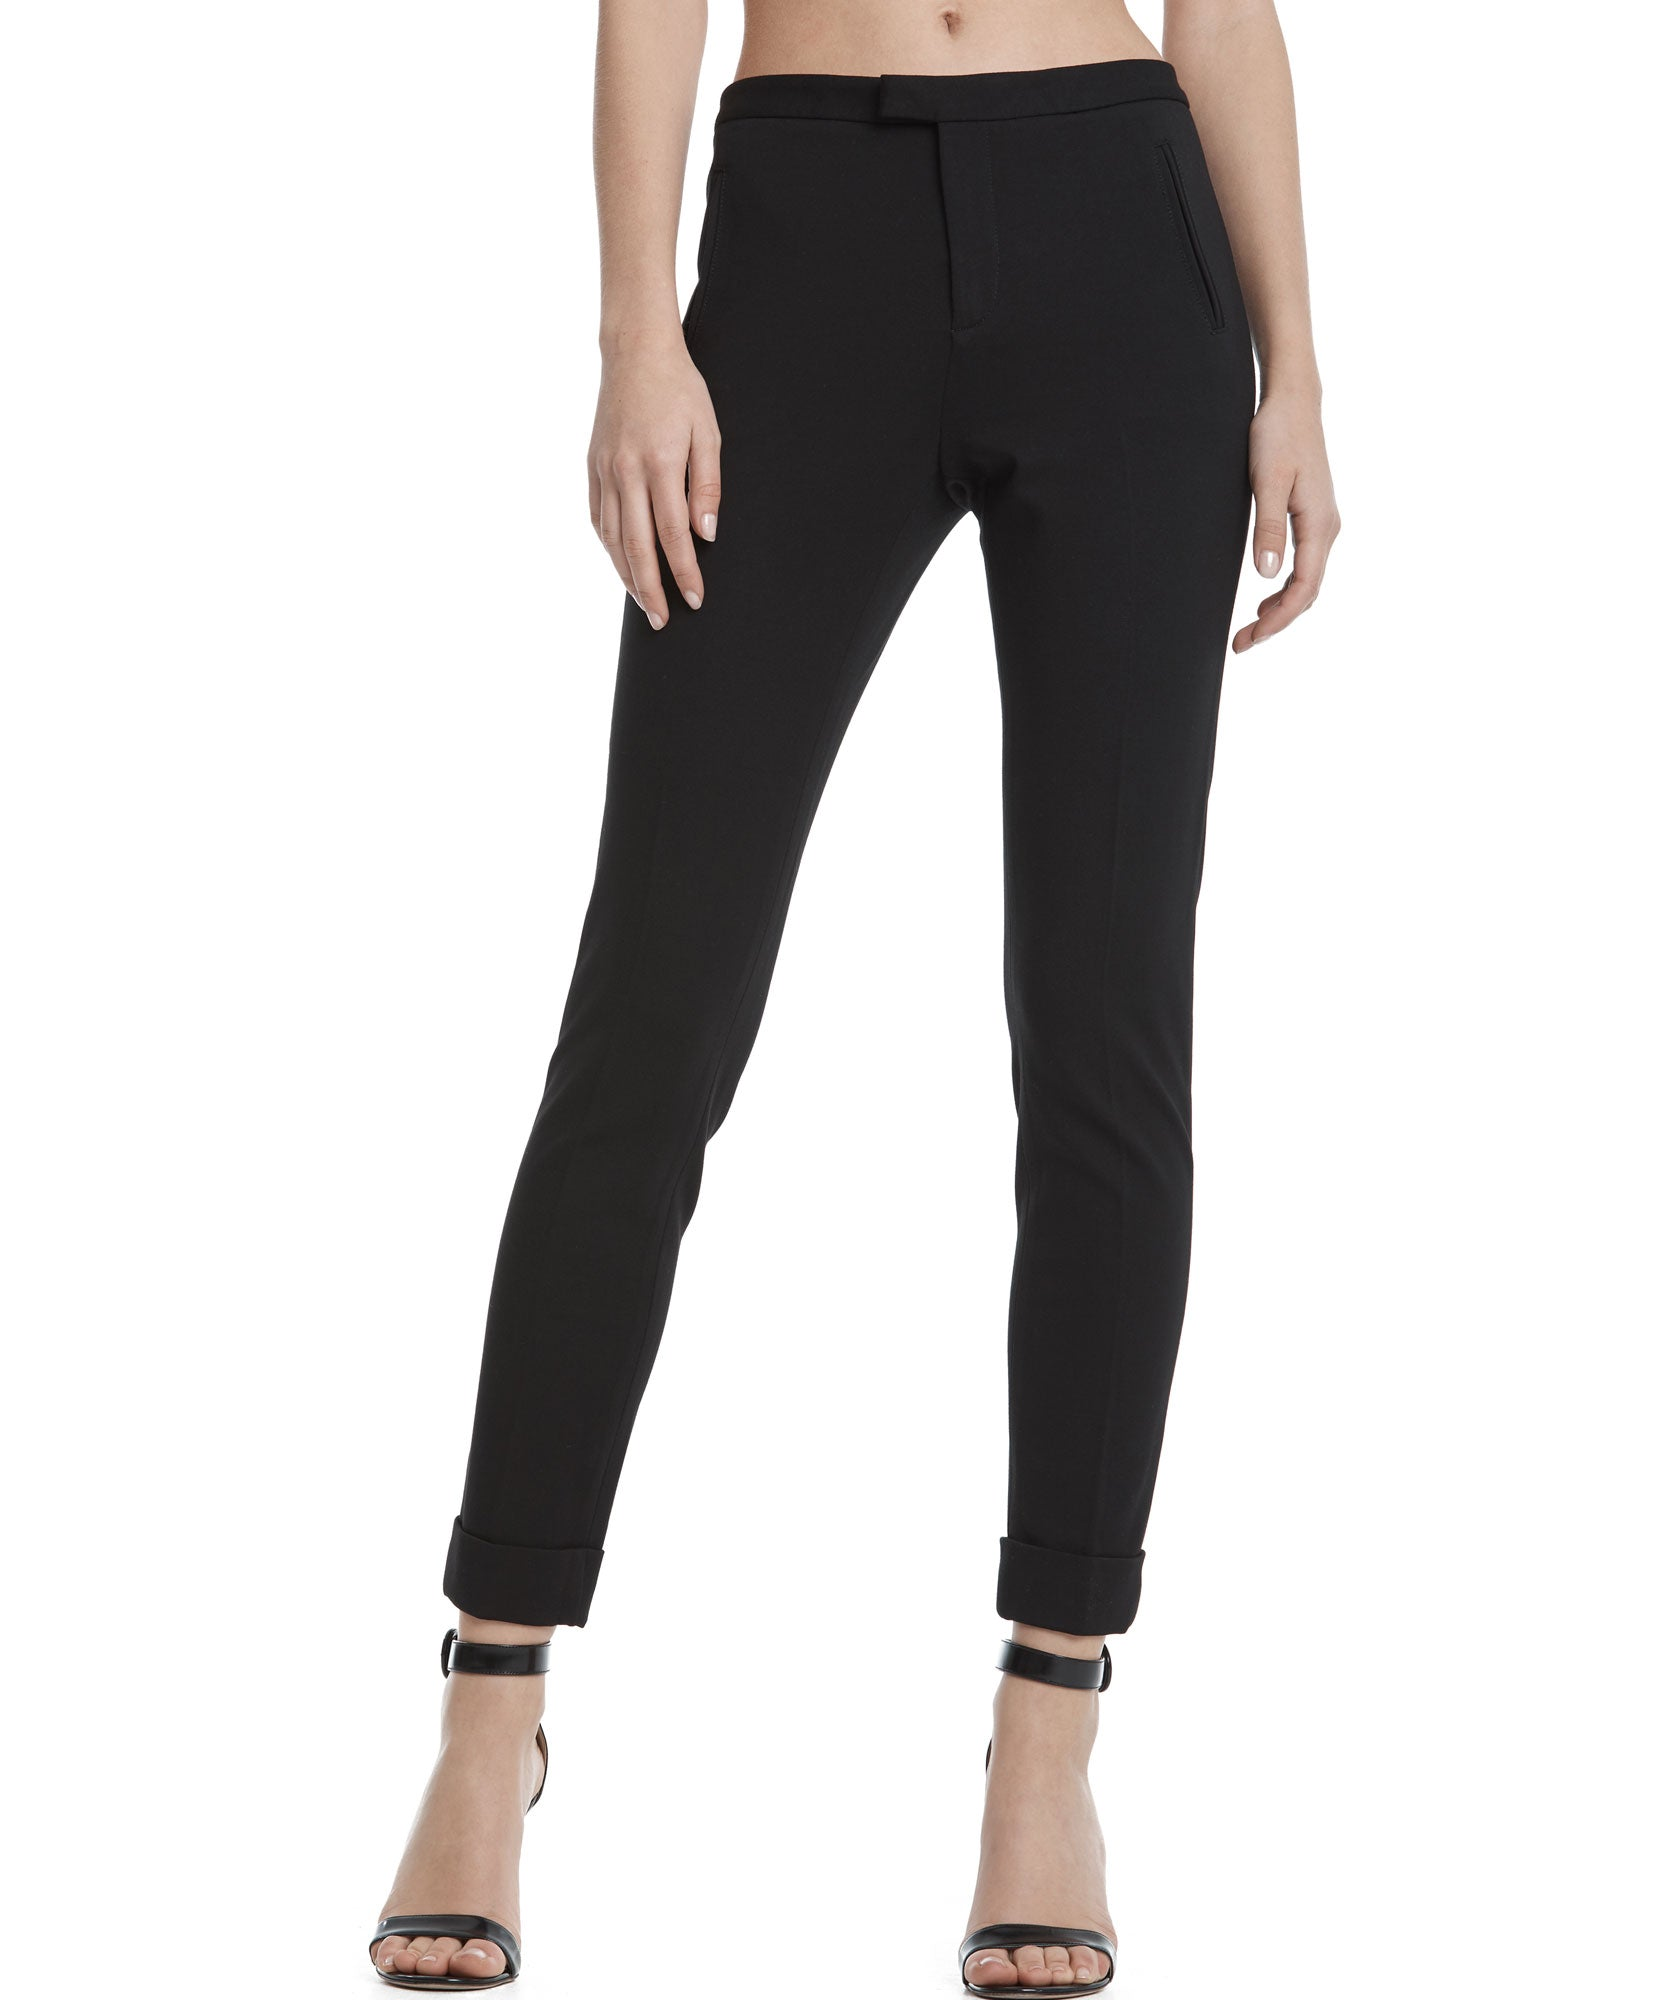 Black Cuffed Ponte Classic Pants - Women's Luxe Pants by ATM Anthony Thomas Melillo